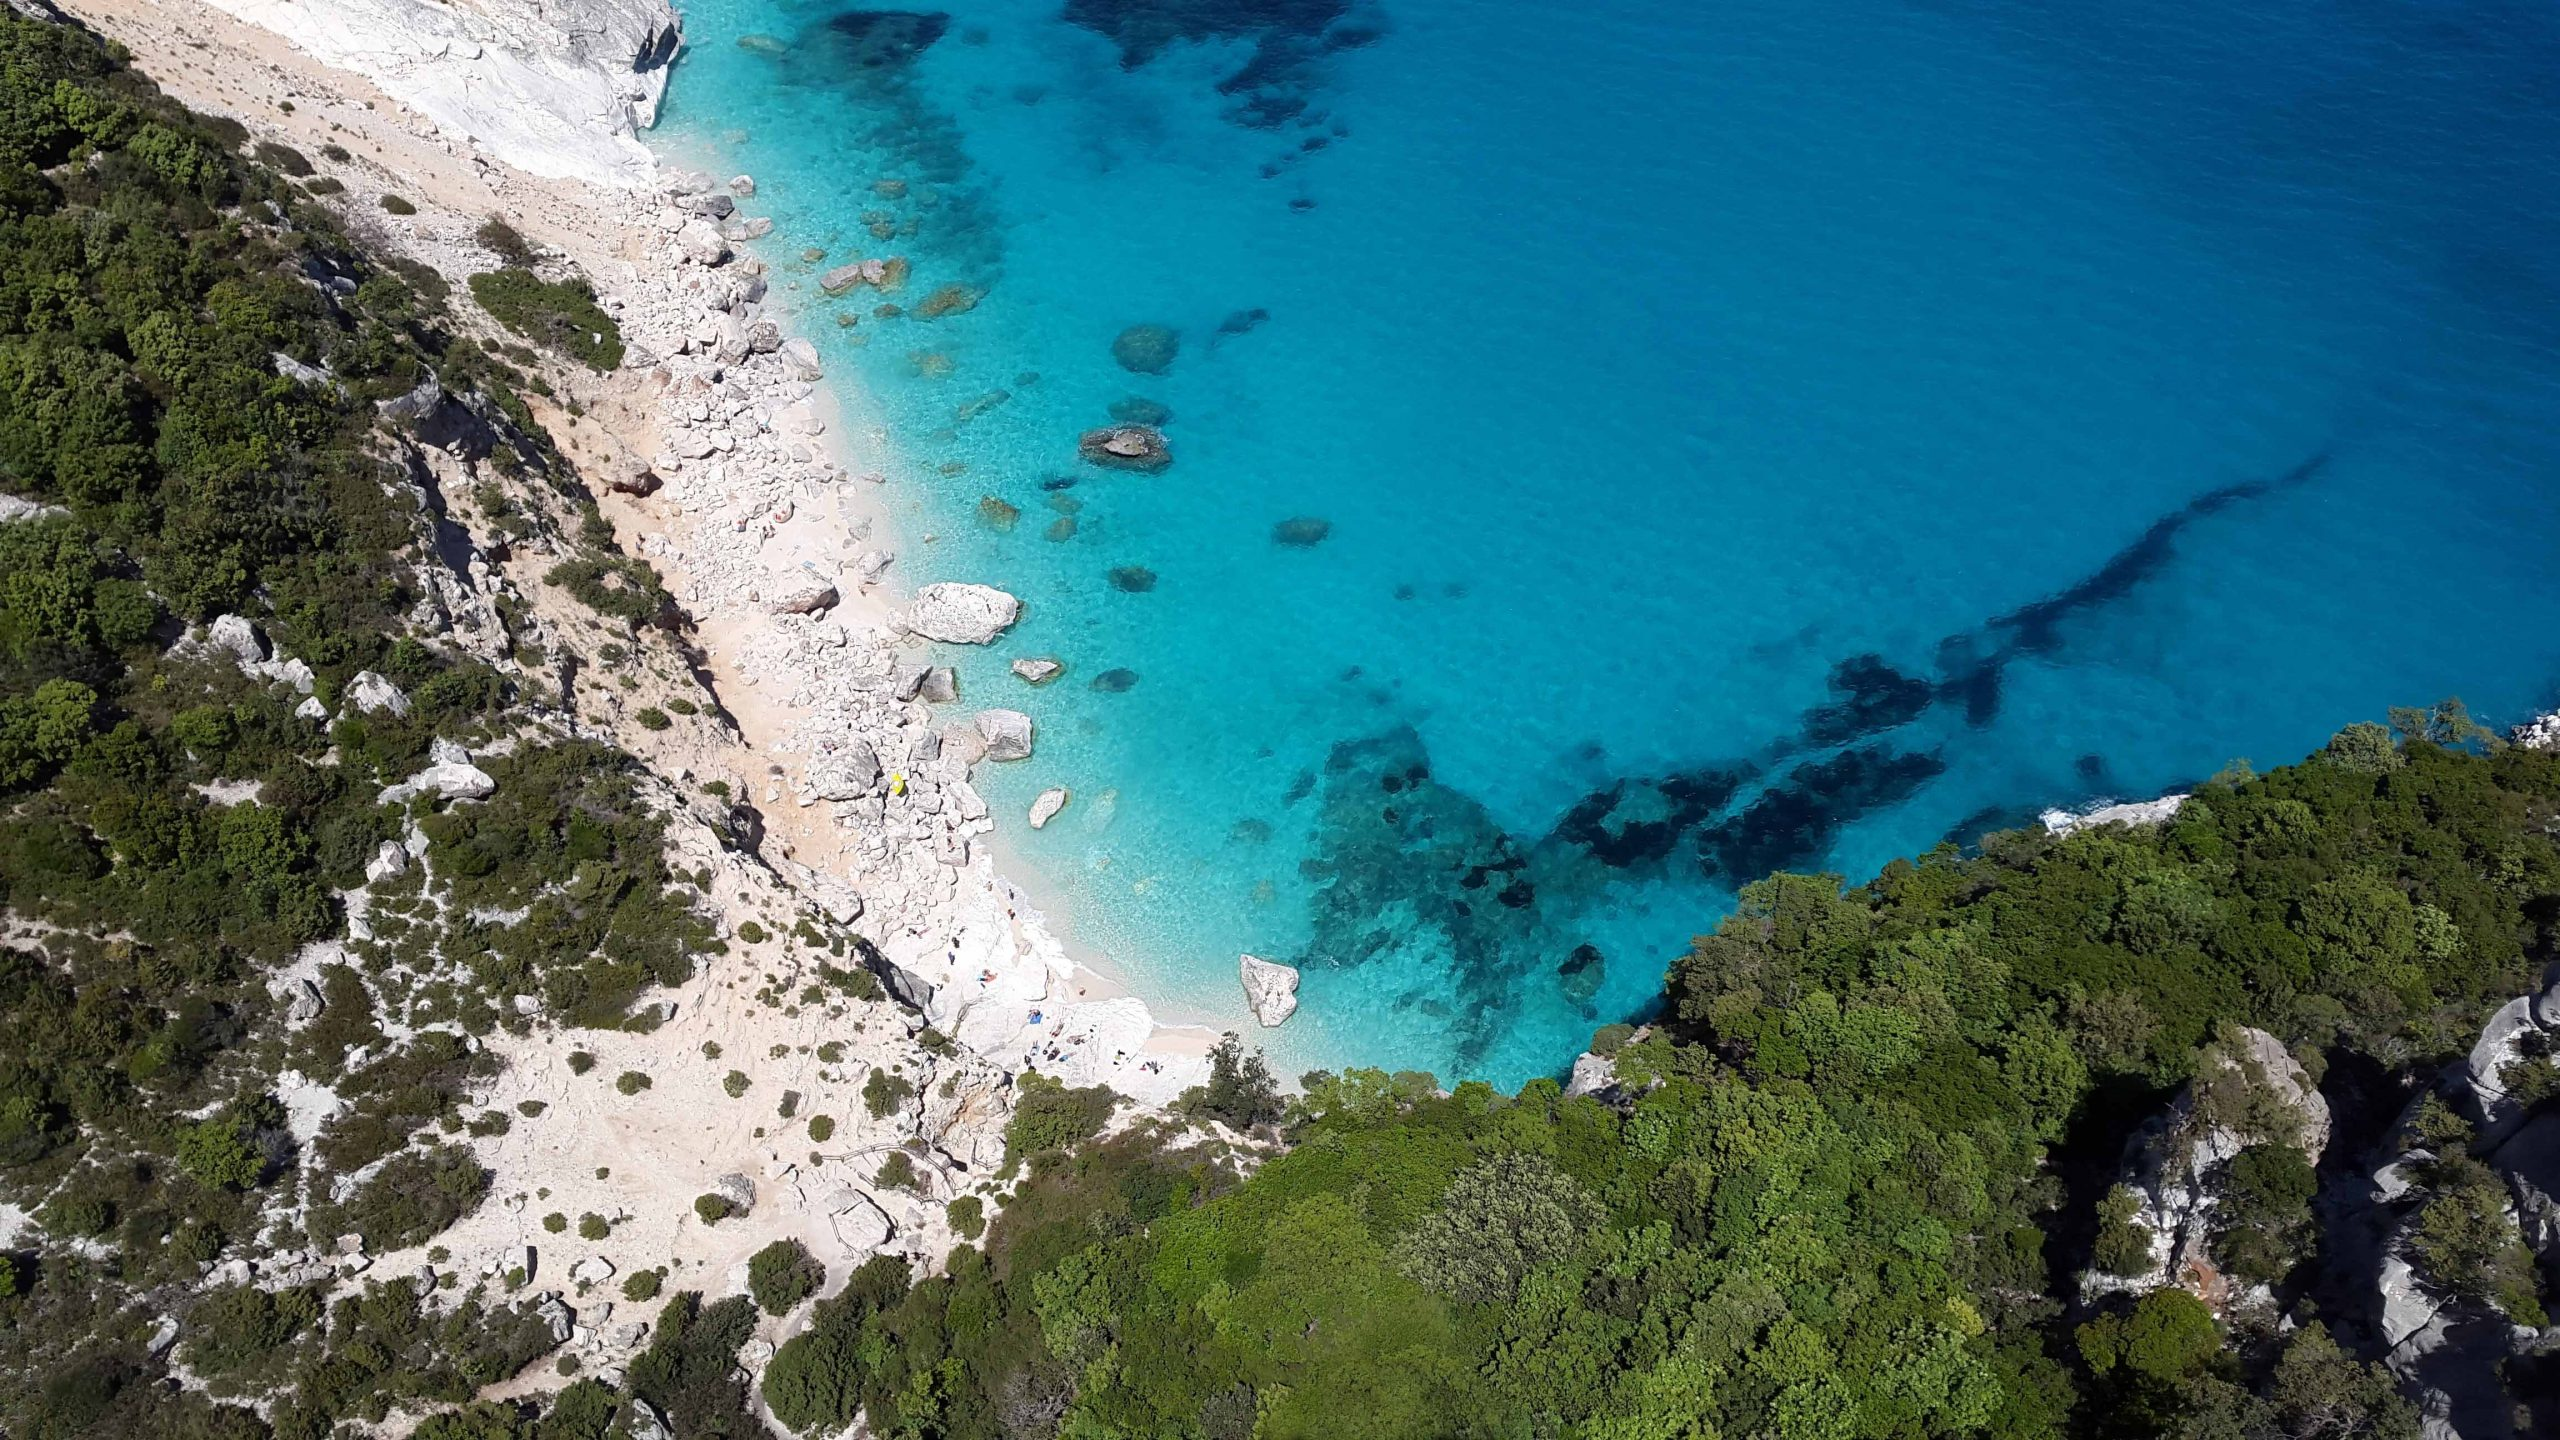 Top 12 best beaches in Spain to visit during your Erasmus